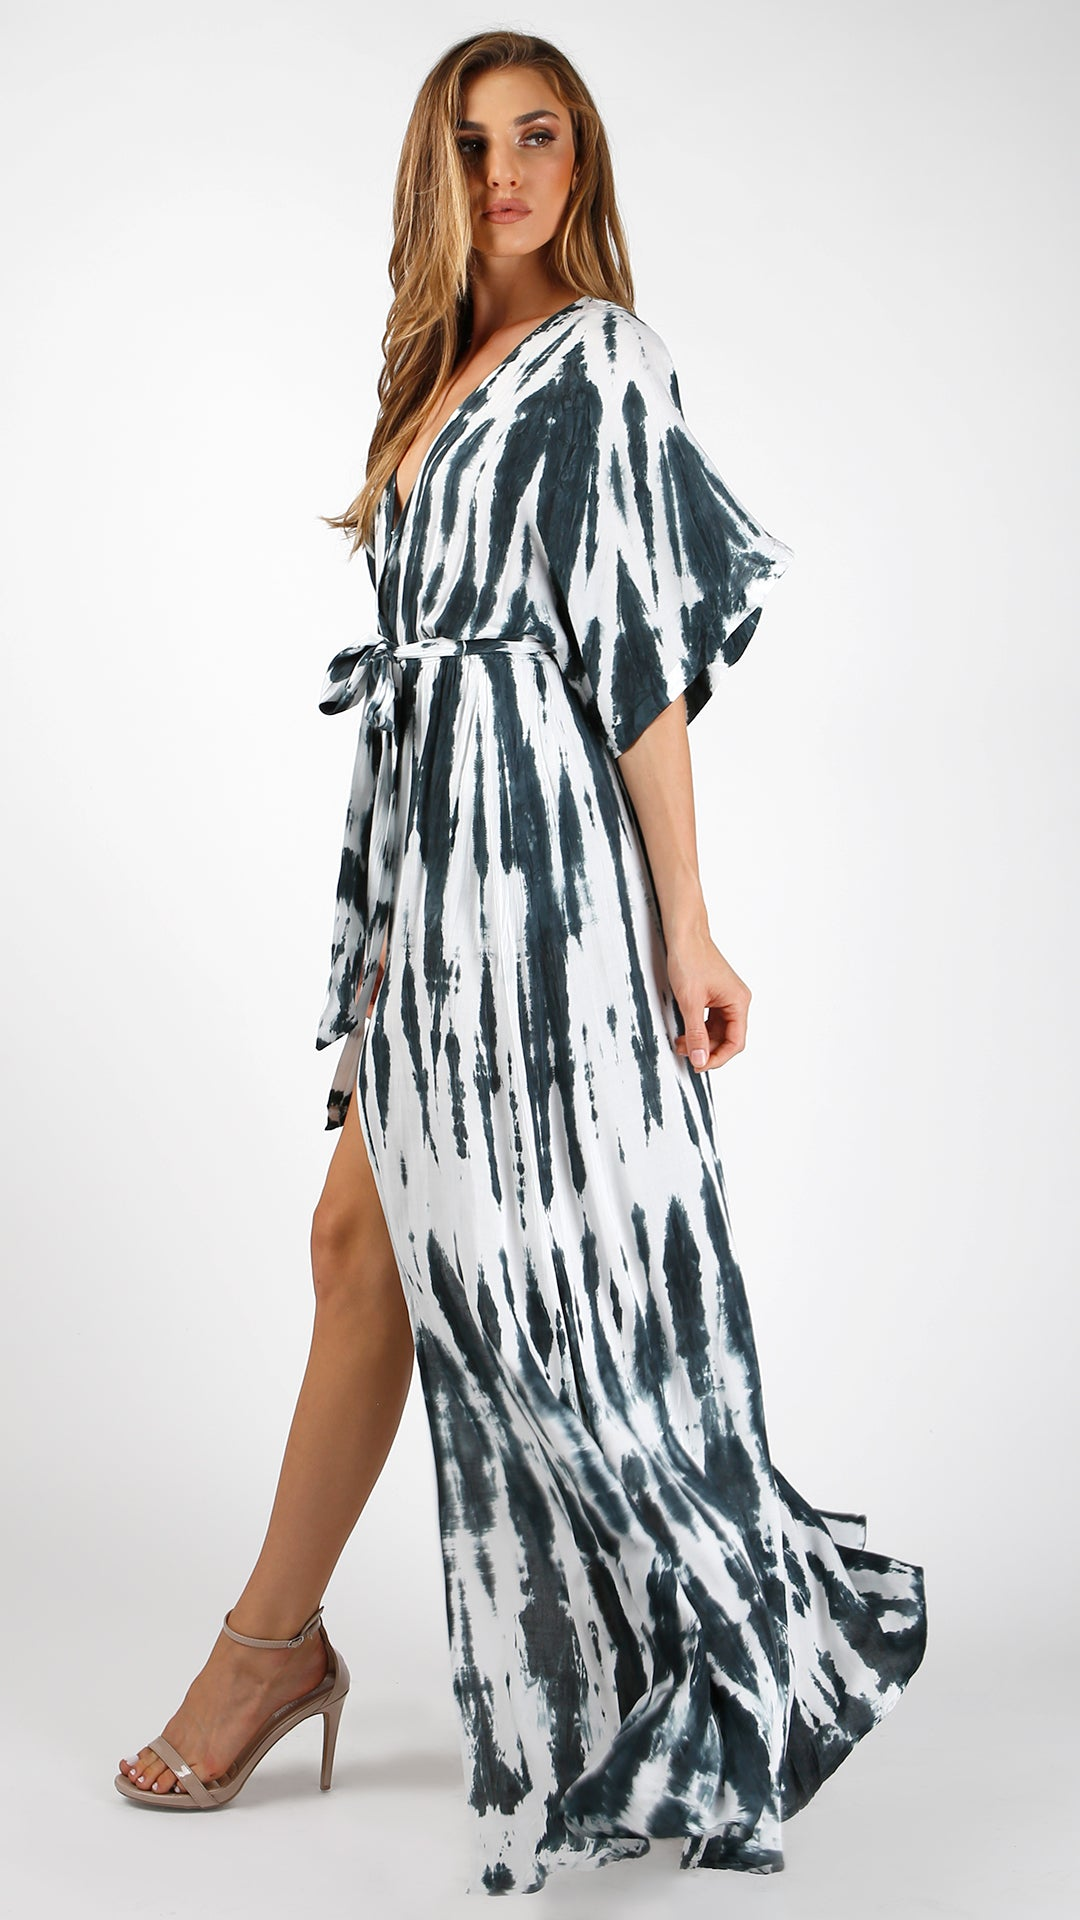 Streaks Of Blue Tie Dye Maxi Dress Angl